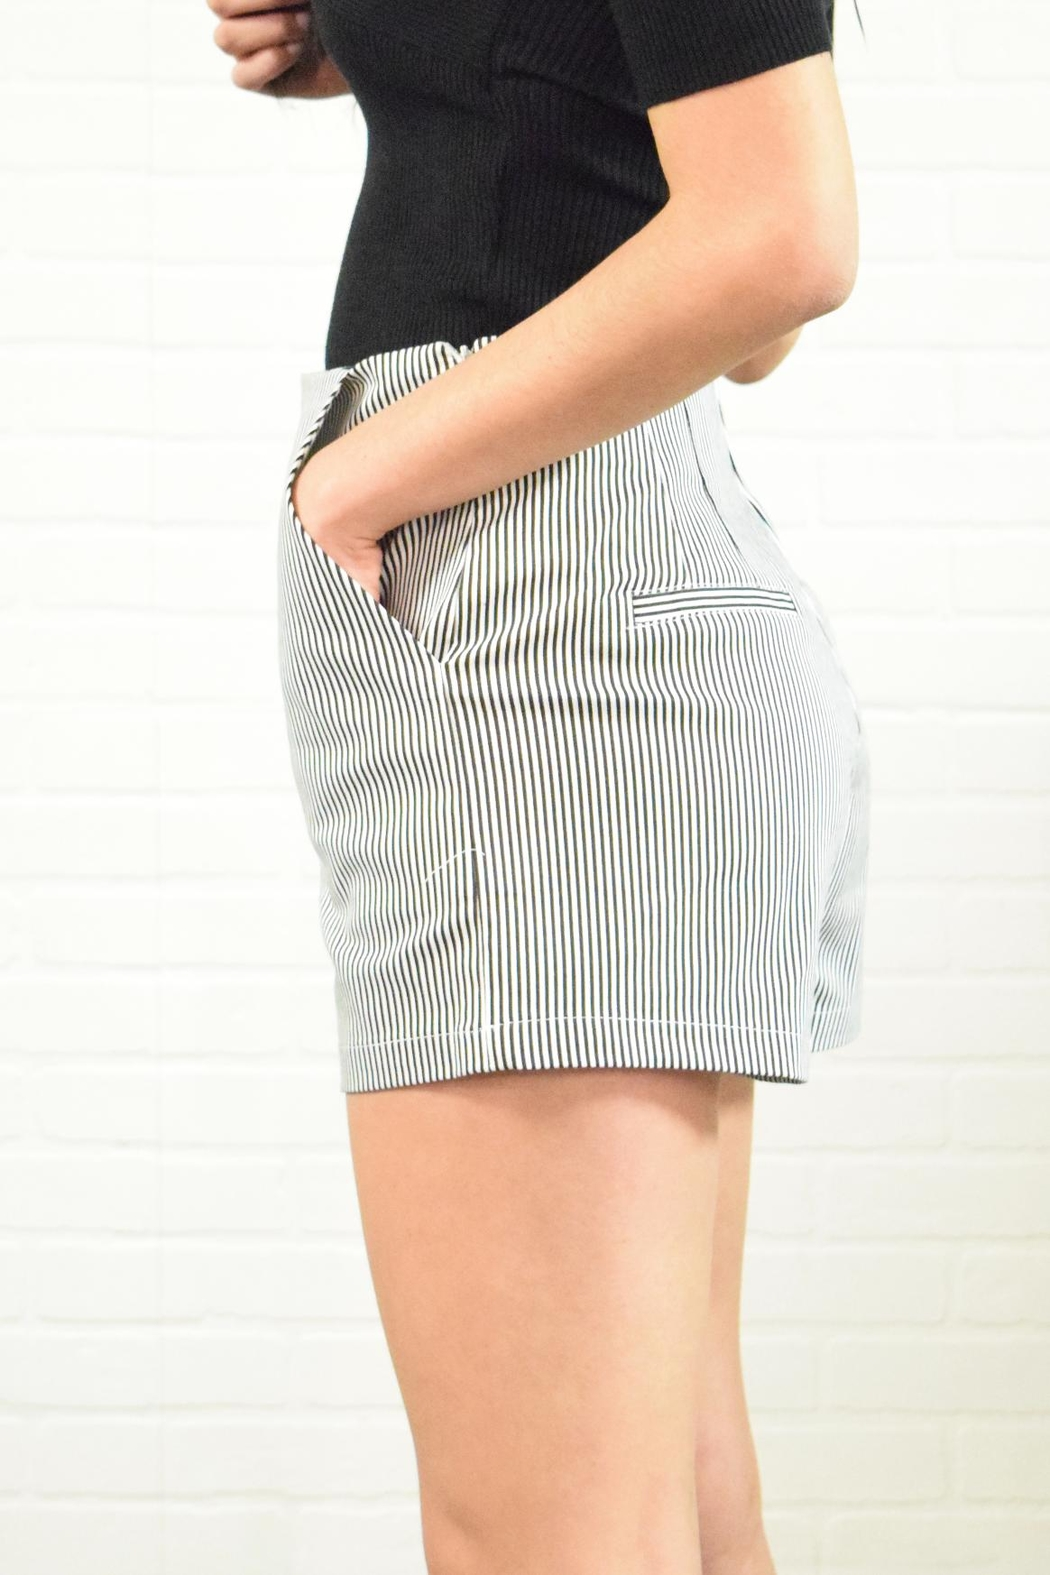 Alythea Stripe Shorts - Front Full Image